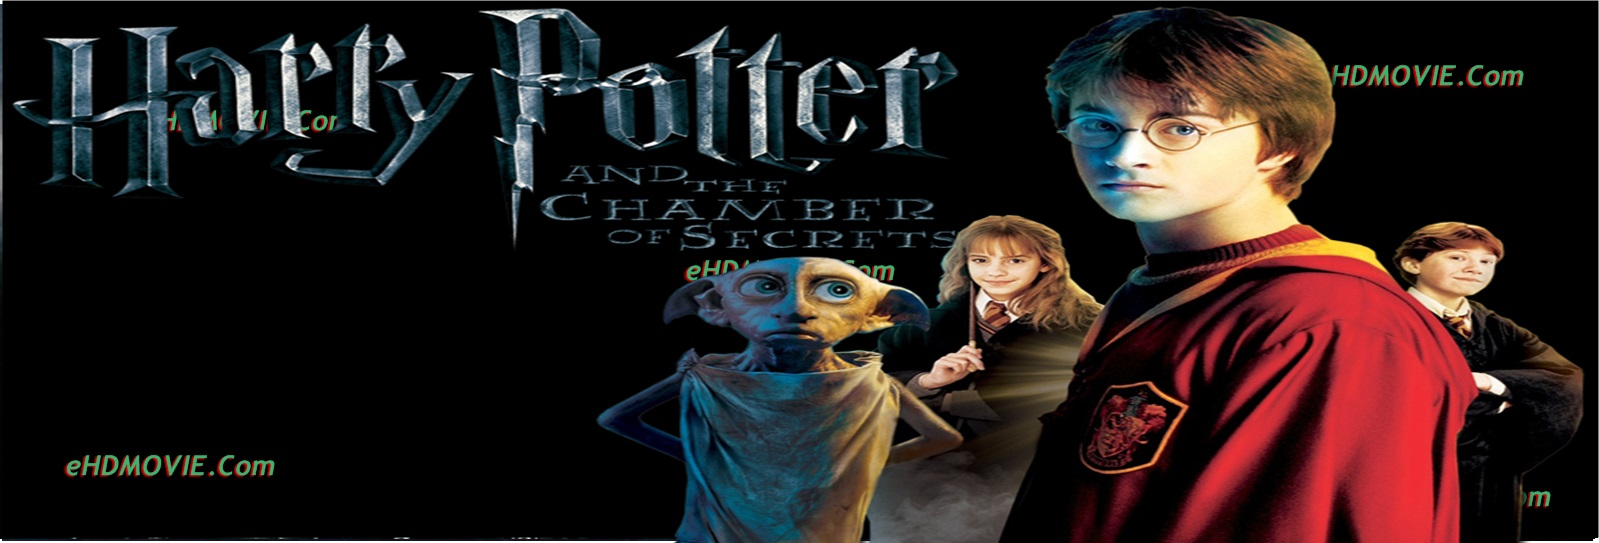 Harry Potter and the Chamber of Secrets 2002 Full Movie English 720p – 480p ORG BRRip 550MB - 1.3GB ESubs Free Download